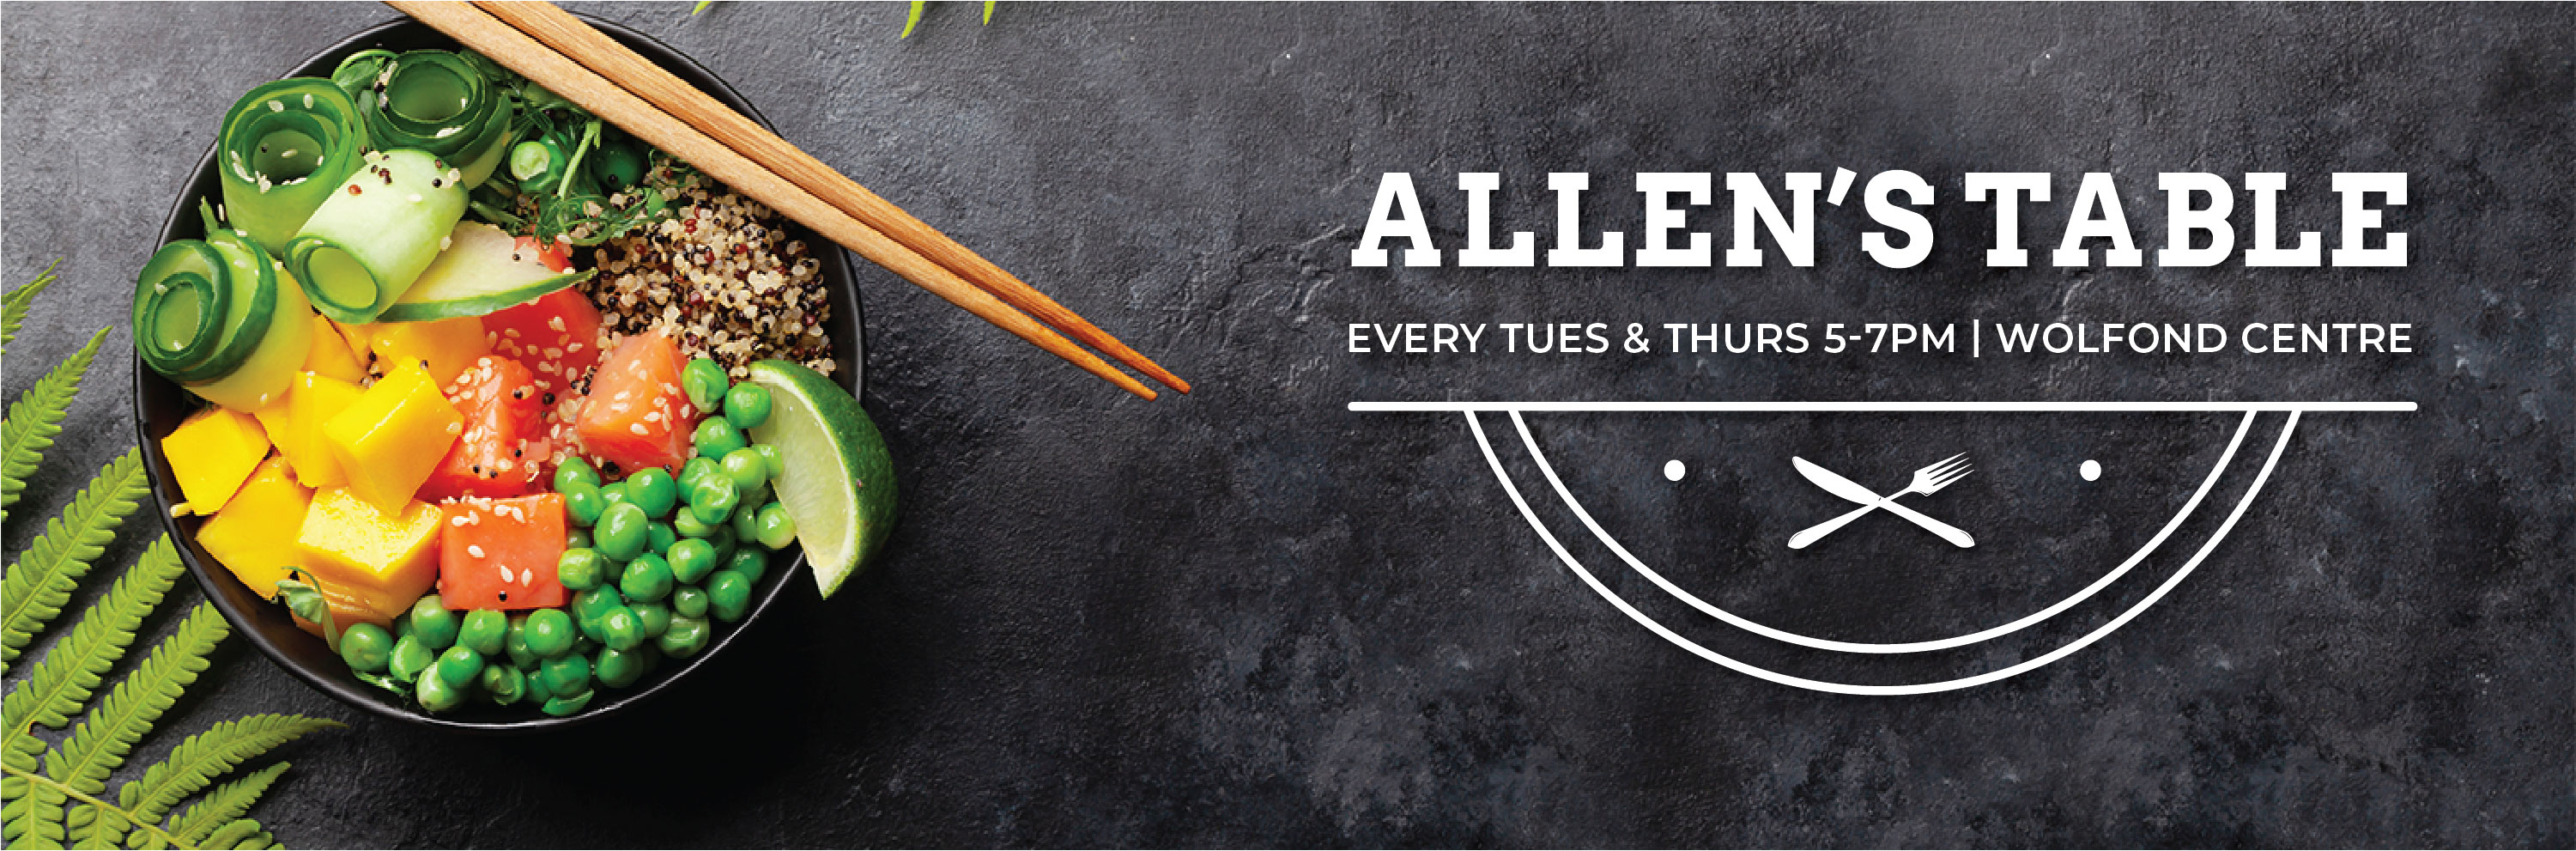 After much anticipation, kosher meals are back at Allen's Table!! Every Tuesday & Thursday from 5-7 pm at the Wolfond Centre